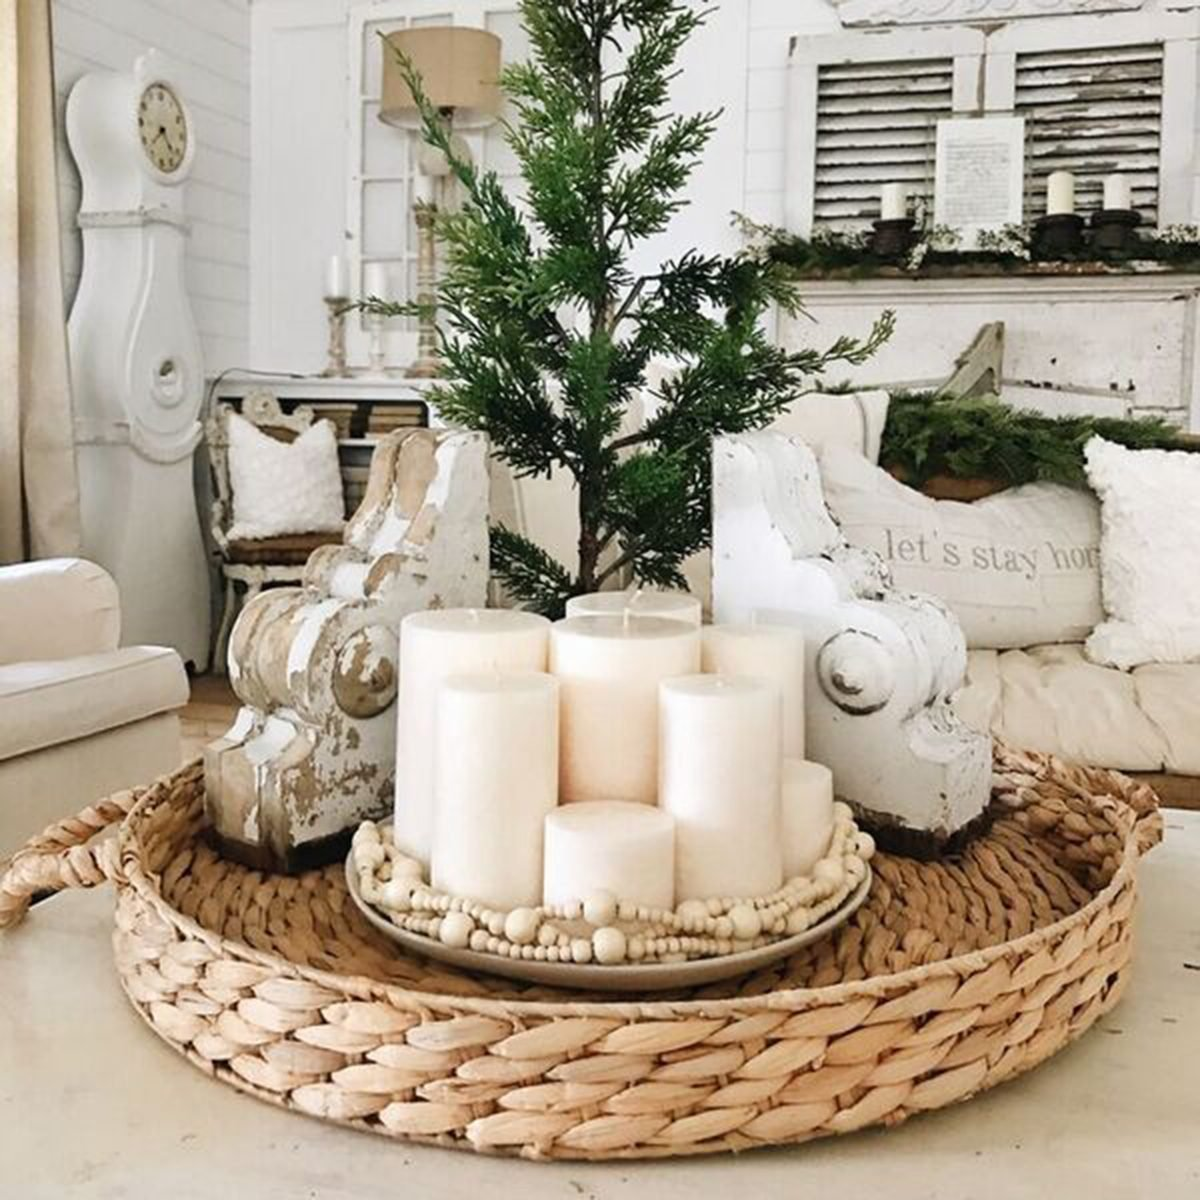 diy living room table decor swivel glider chairs 12 crafty ideas for centerpieces taste of home simple candle centerpiece